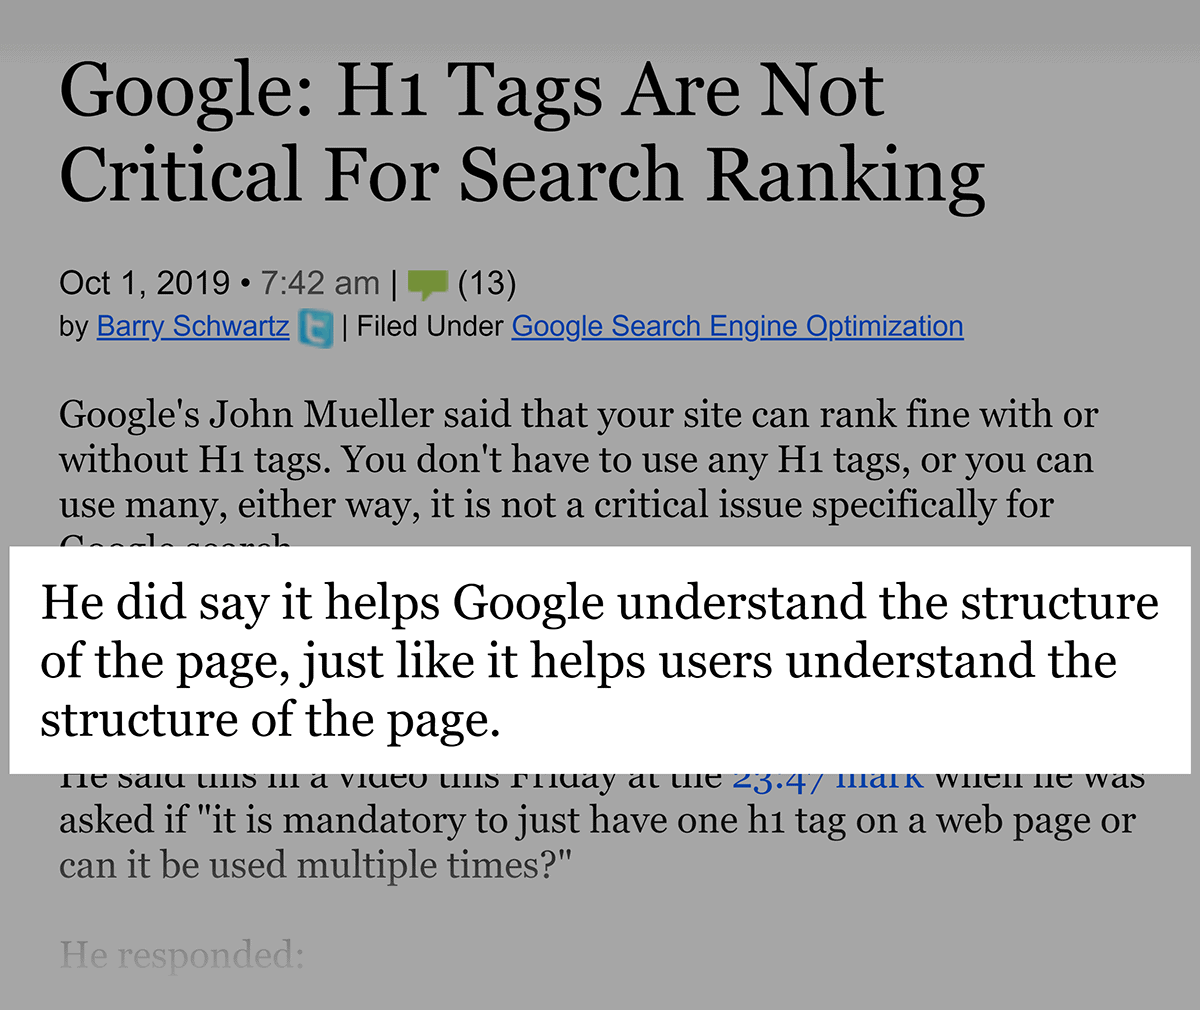 Google on H1 tags for rankings